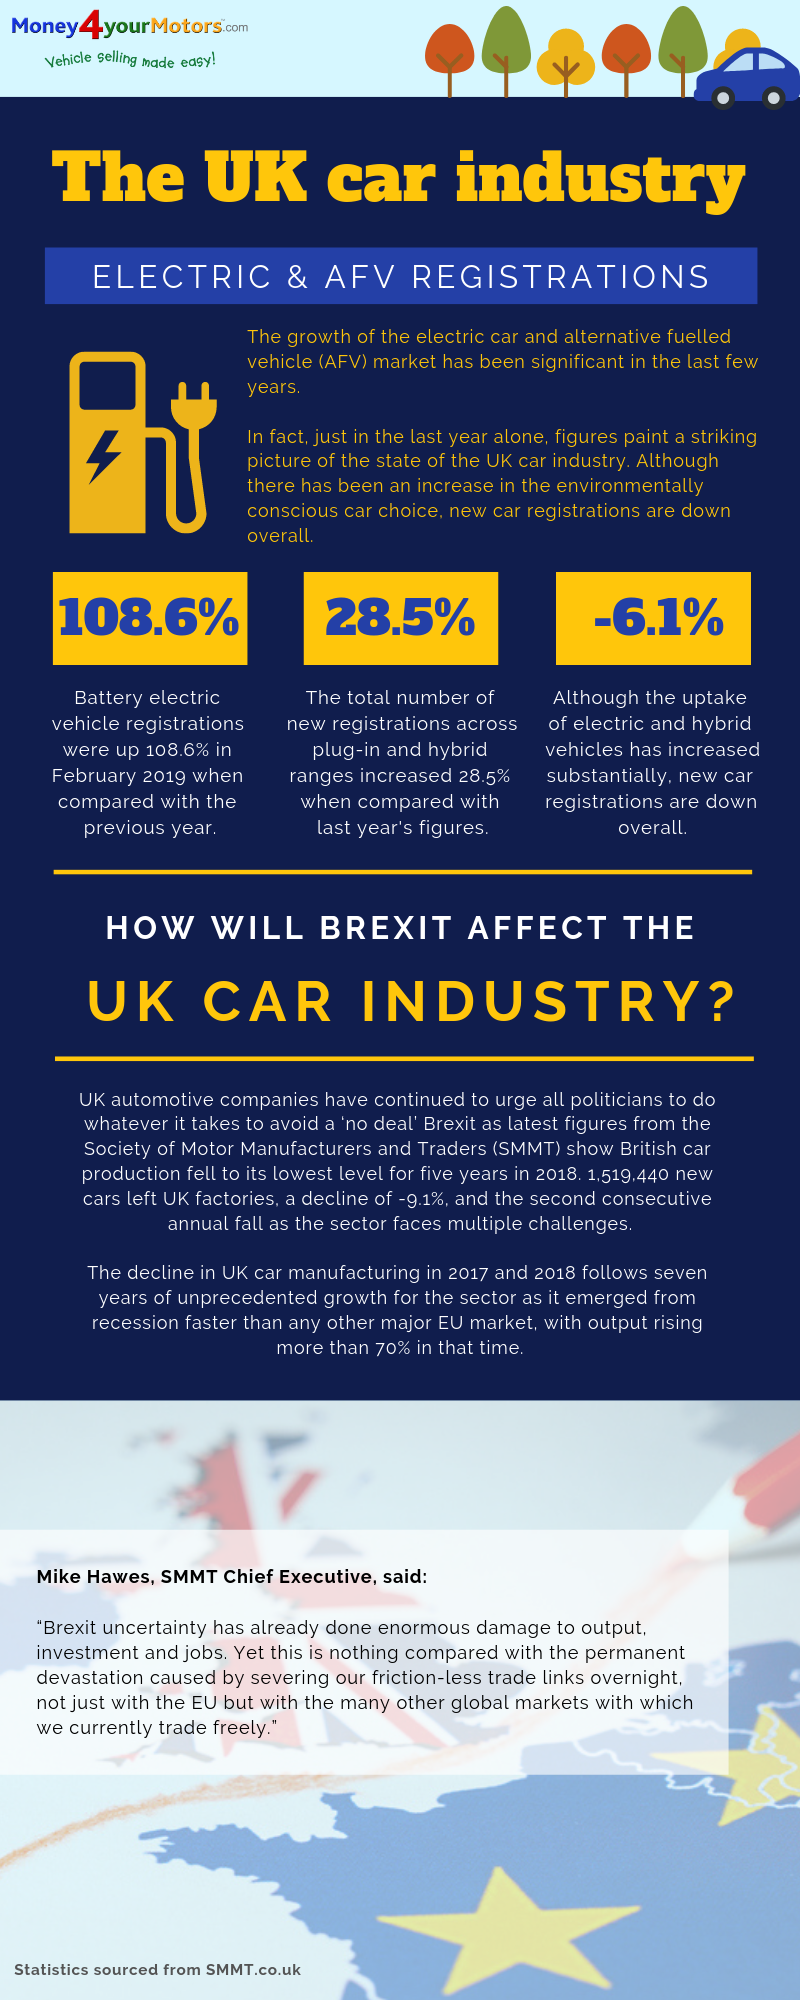 The State of the UK Car Industry